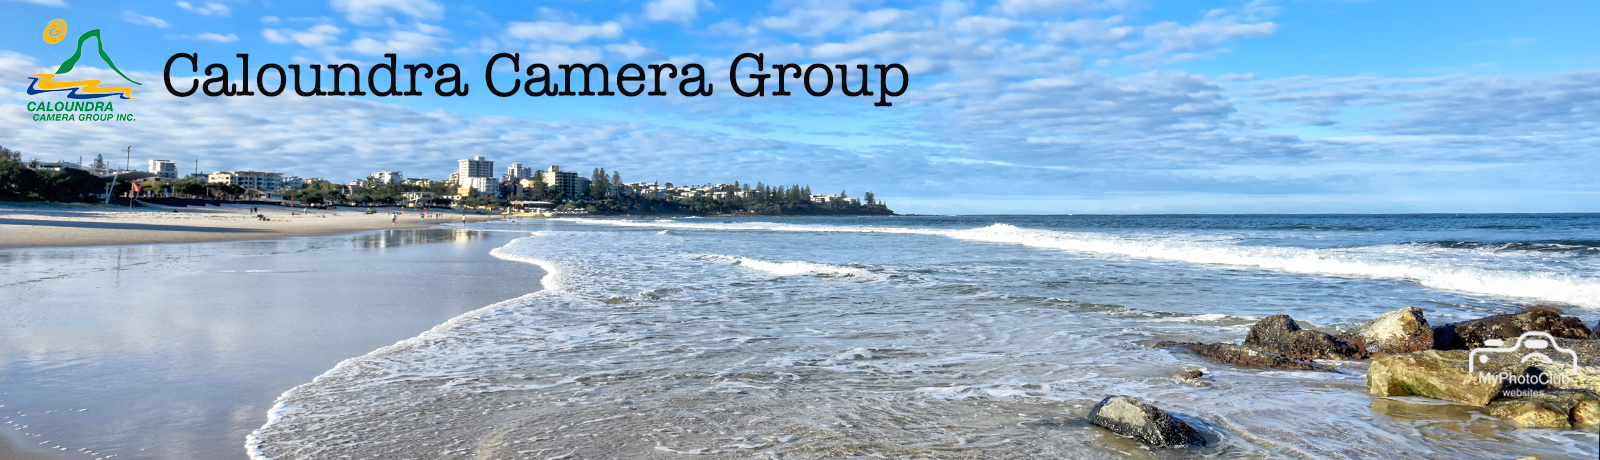 Caloundra Camera Group